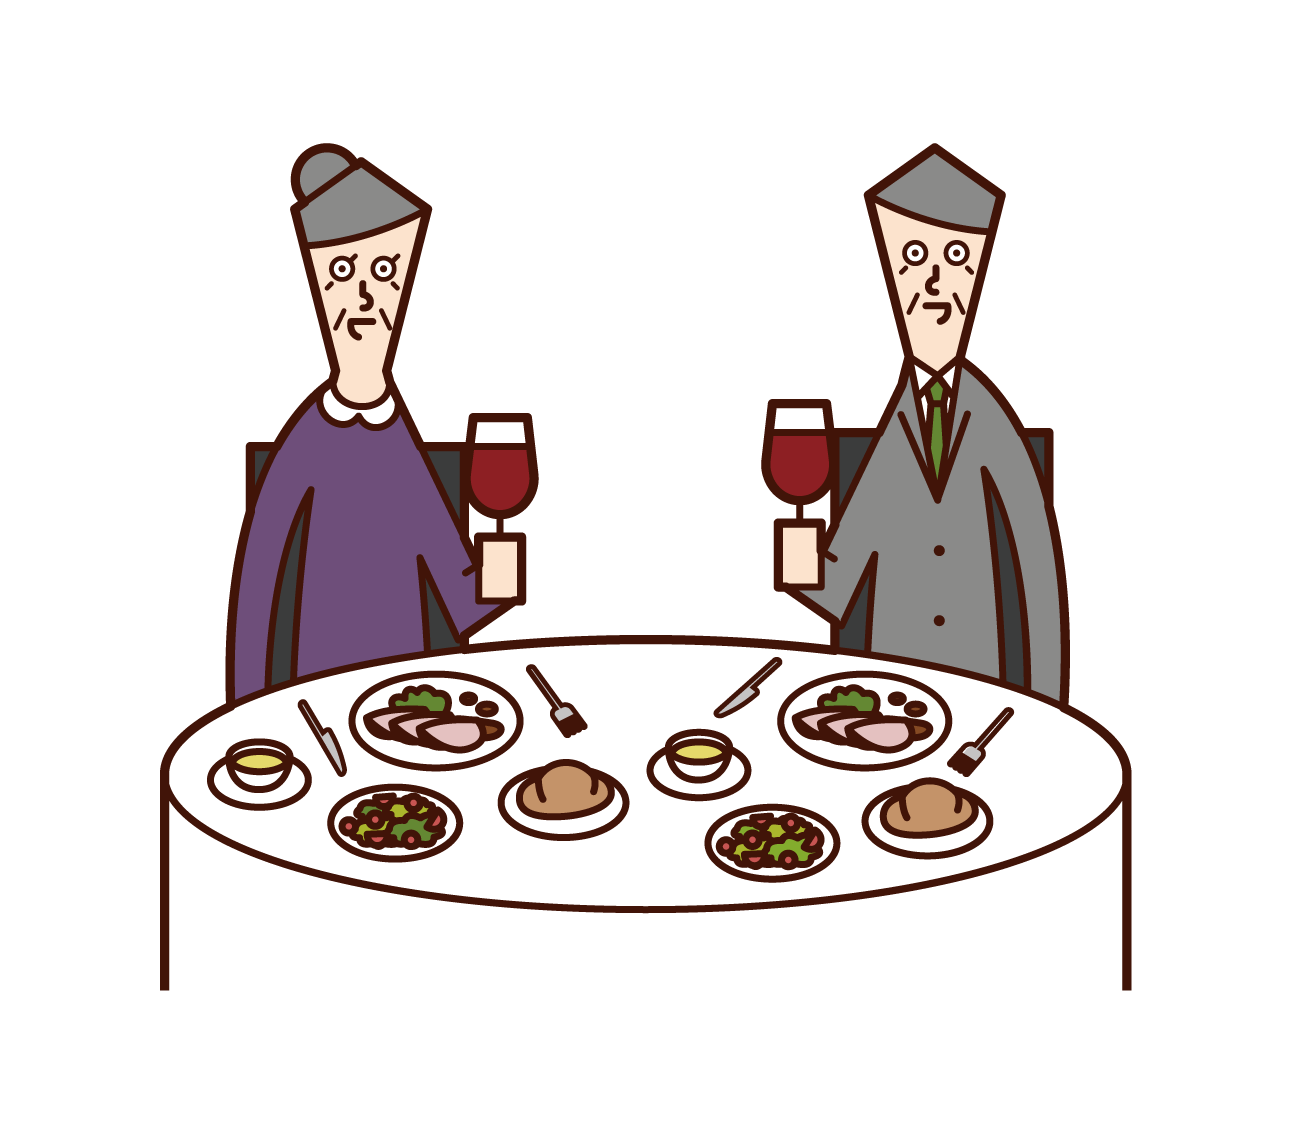 Illustration of an elderly couple eating deliciously in a restaurant